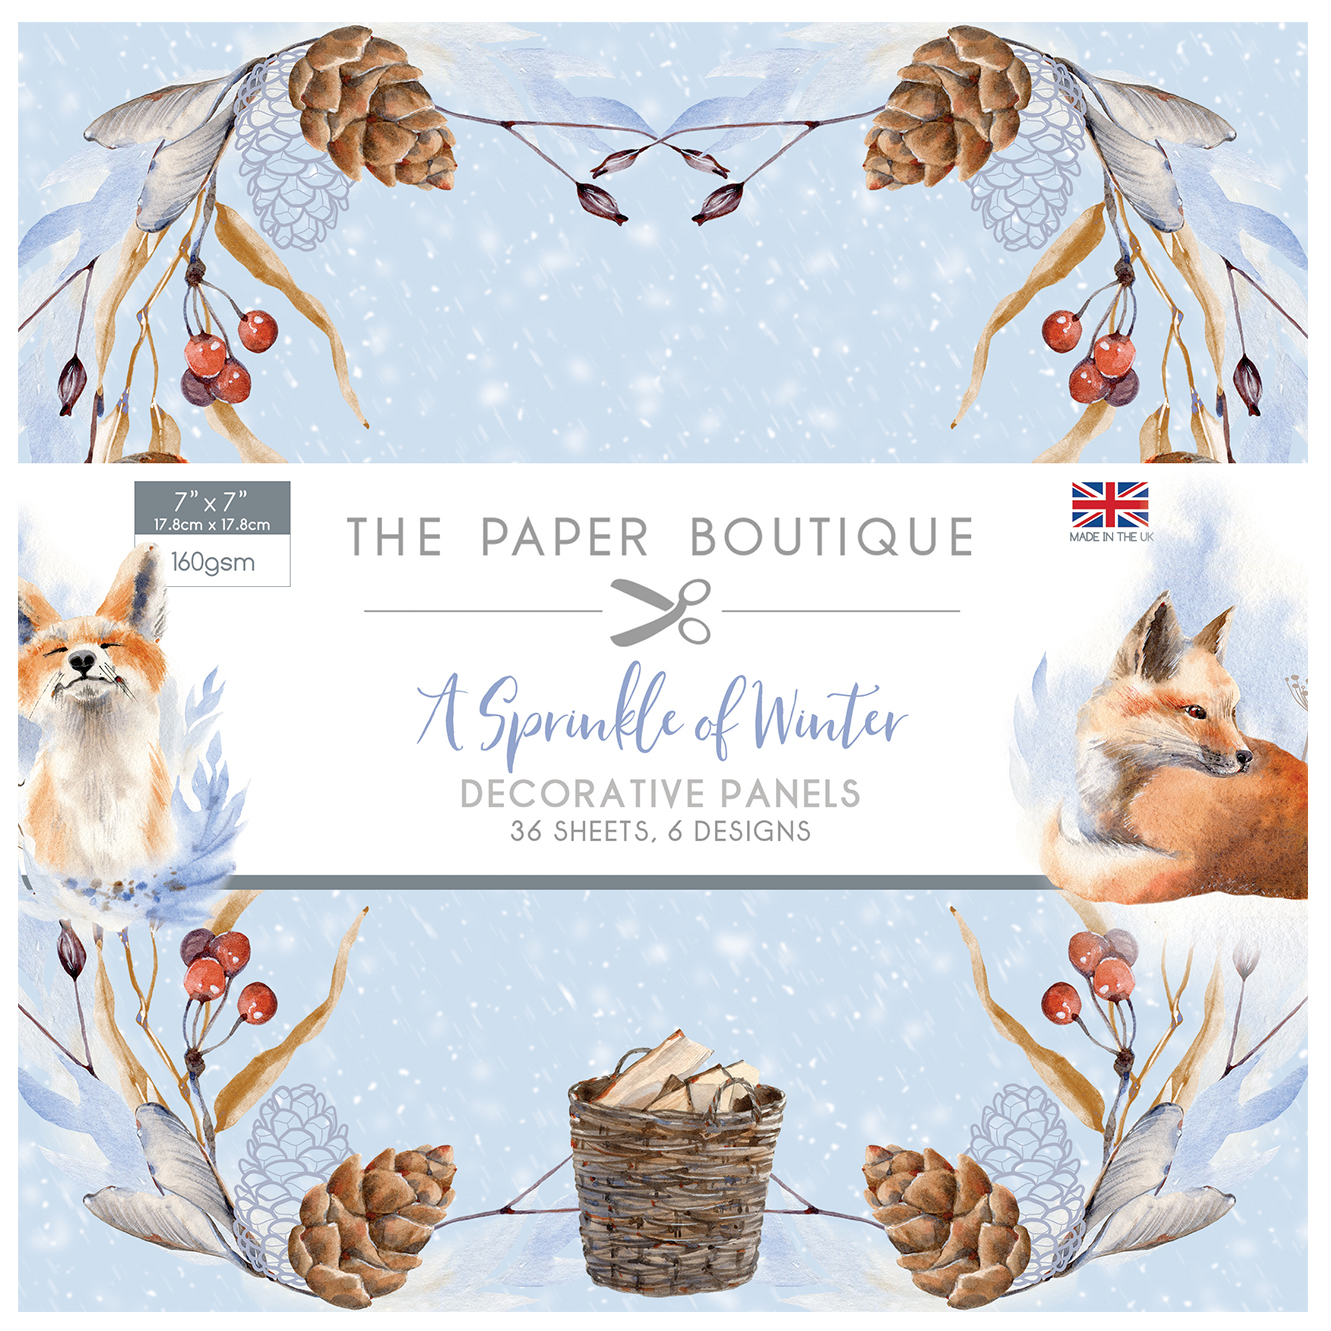 The Paper Boutique A Sprinkle of Winter 7″ x 7″ Panel Pad